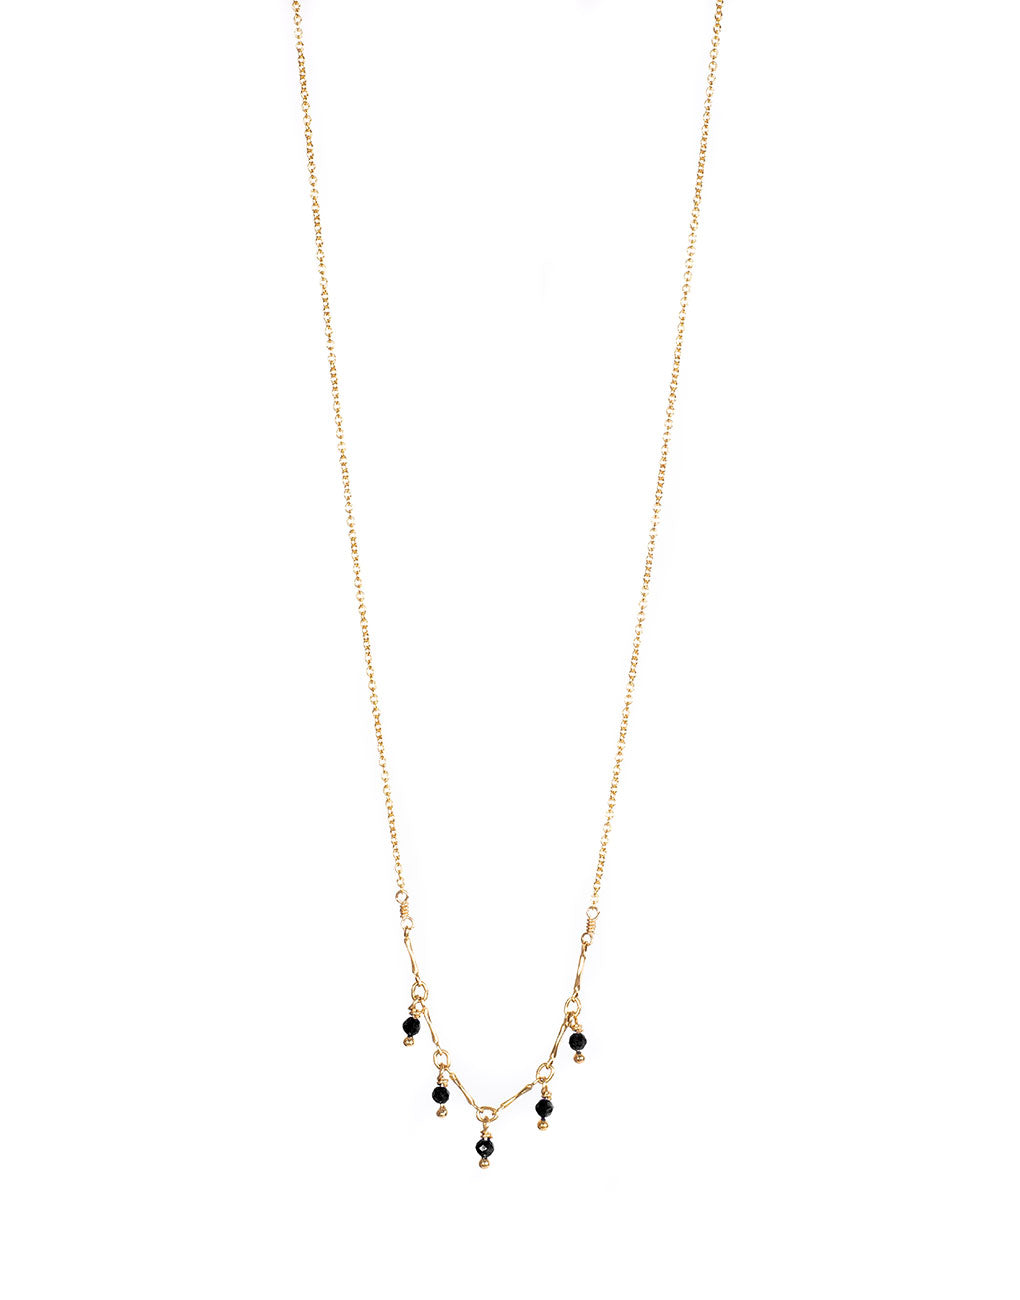 Gemstone Necklace - Onyx | The Little Market